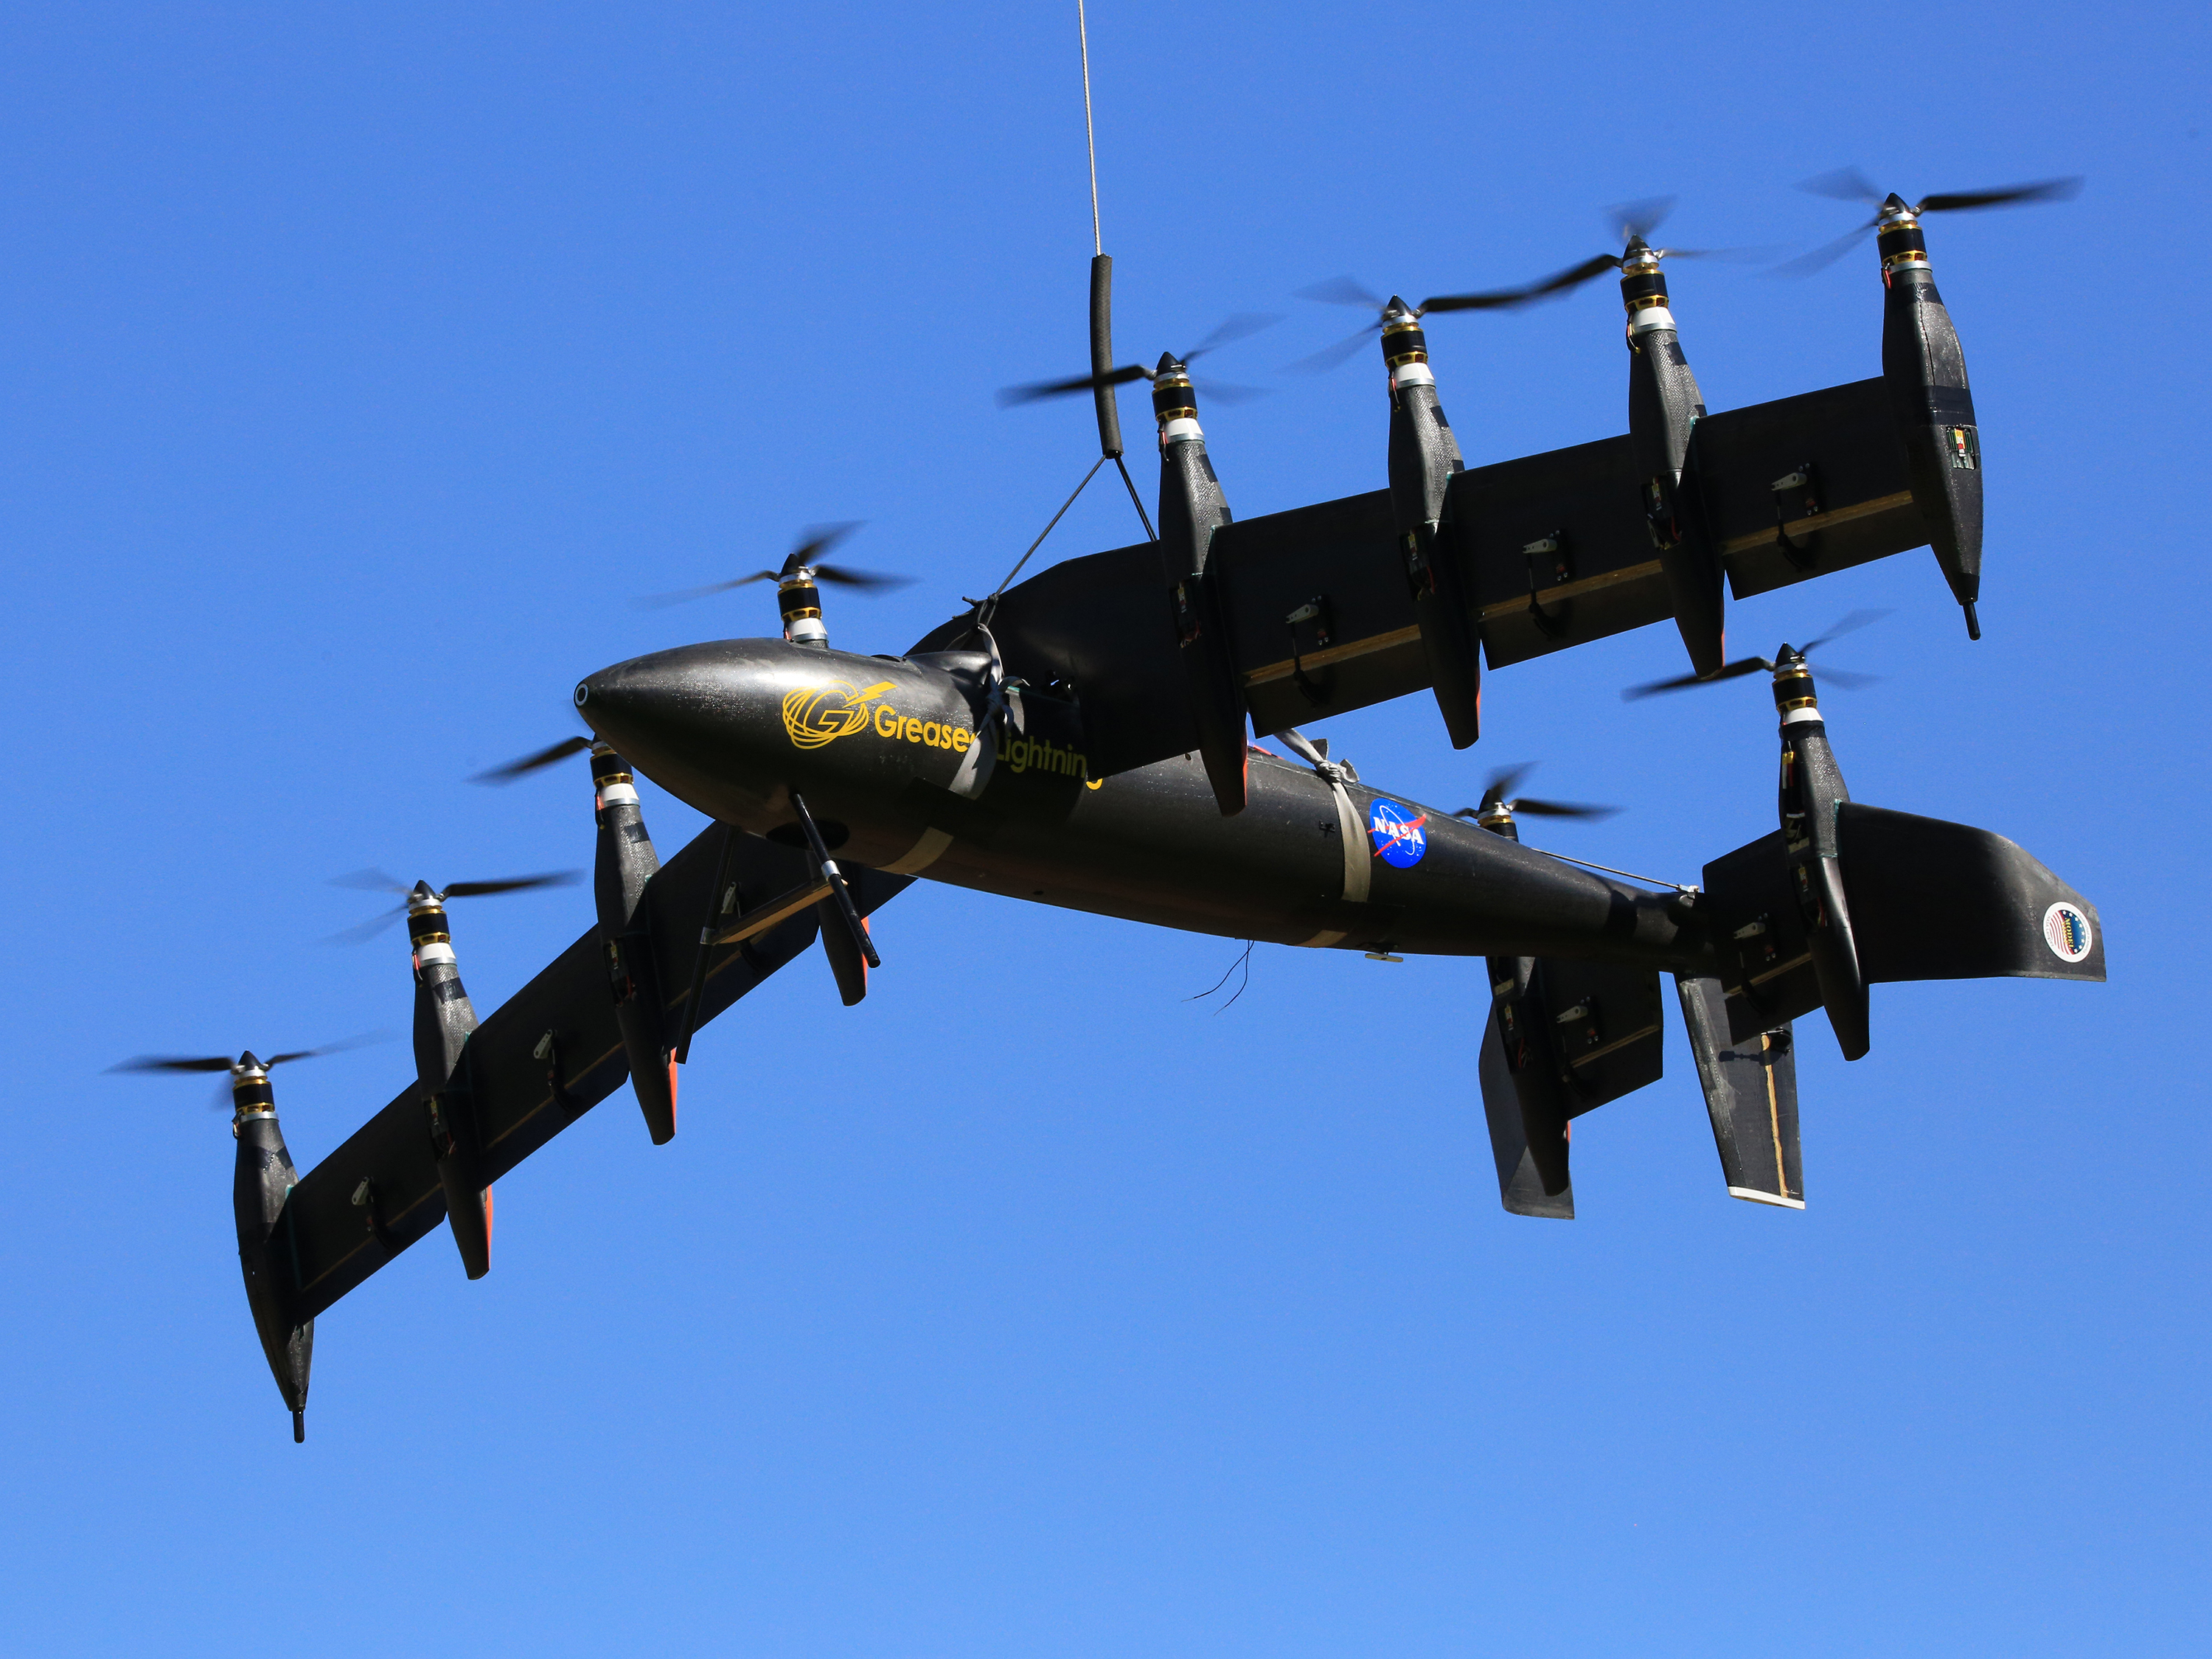 Greased Lighning (GL10) project 10 engine electric prototype remote control plane. Photo taken 8/14/14 by David C. Bowman